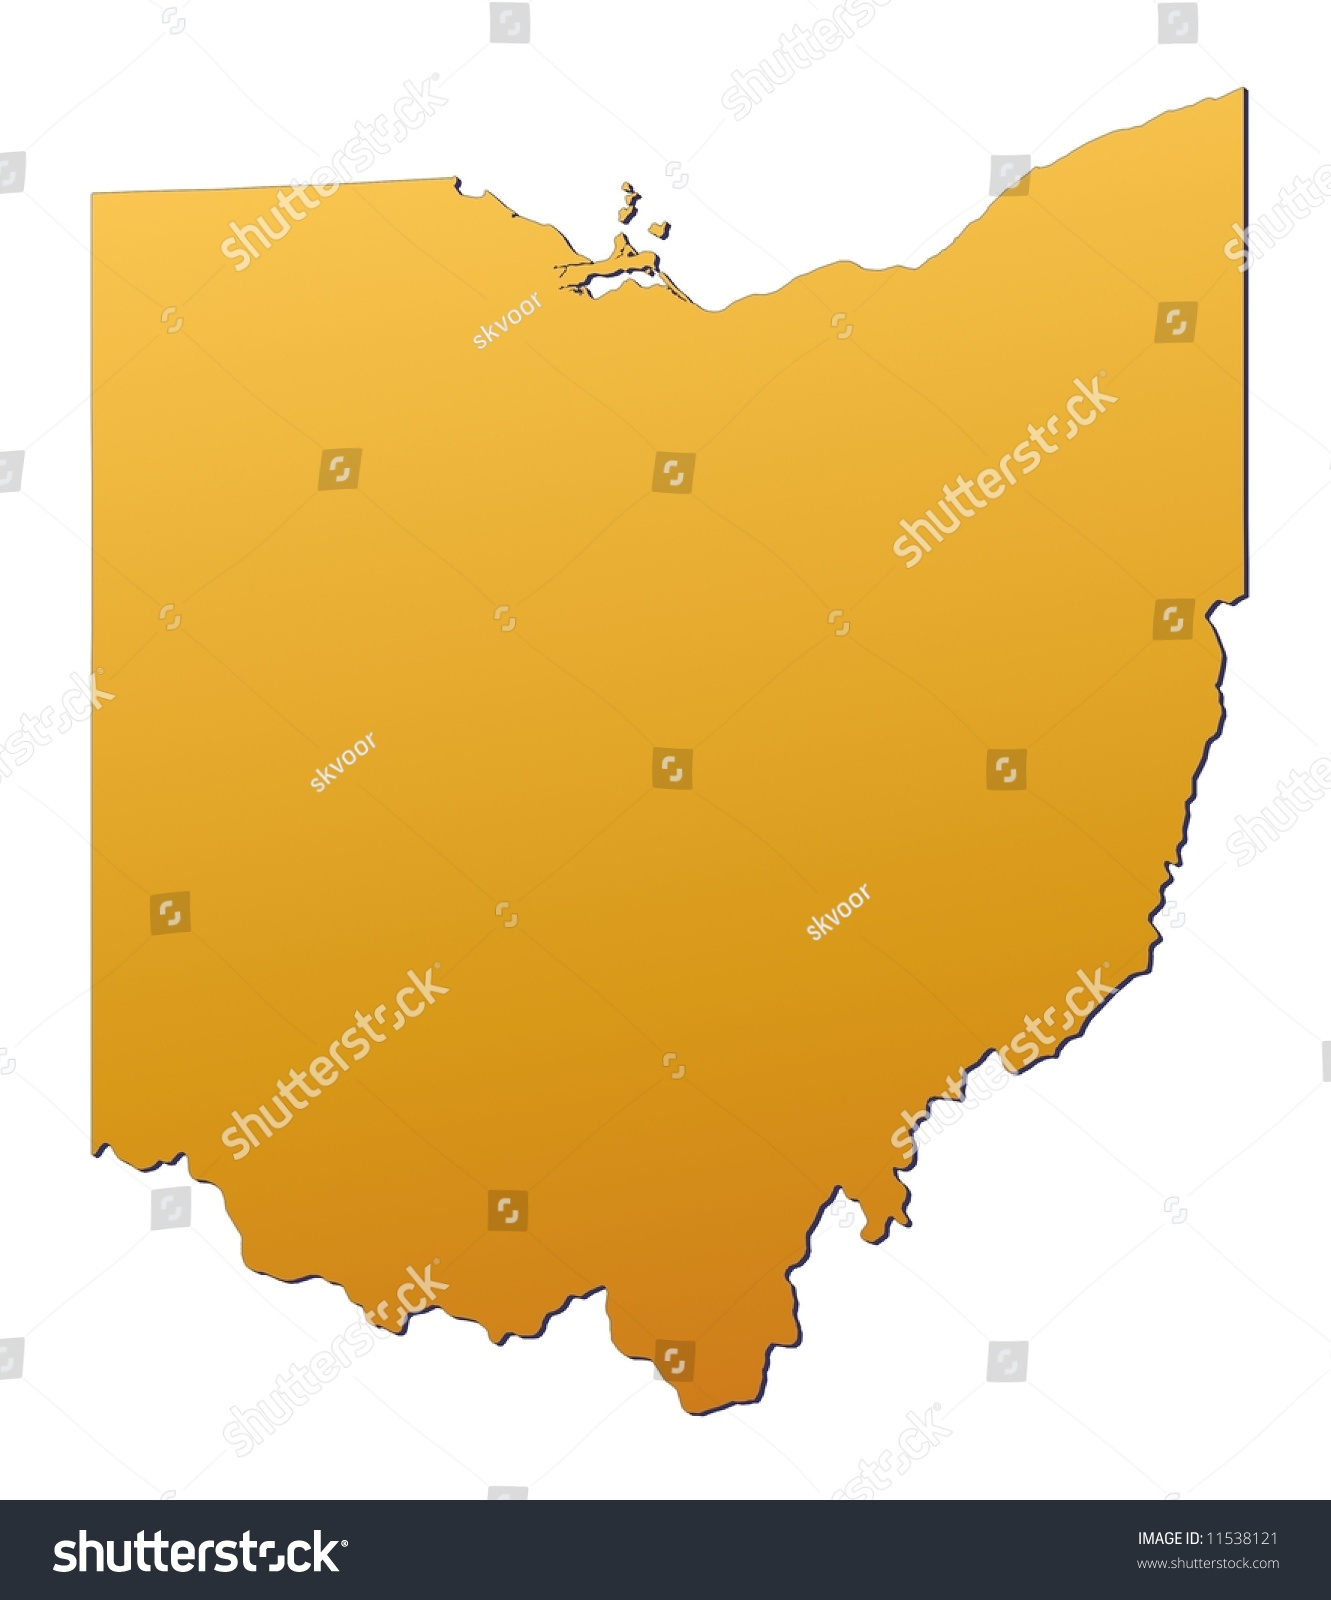 USA Road Map Map Usa Road Google Images Large Detailed Driving - Ohio map usa